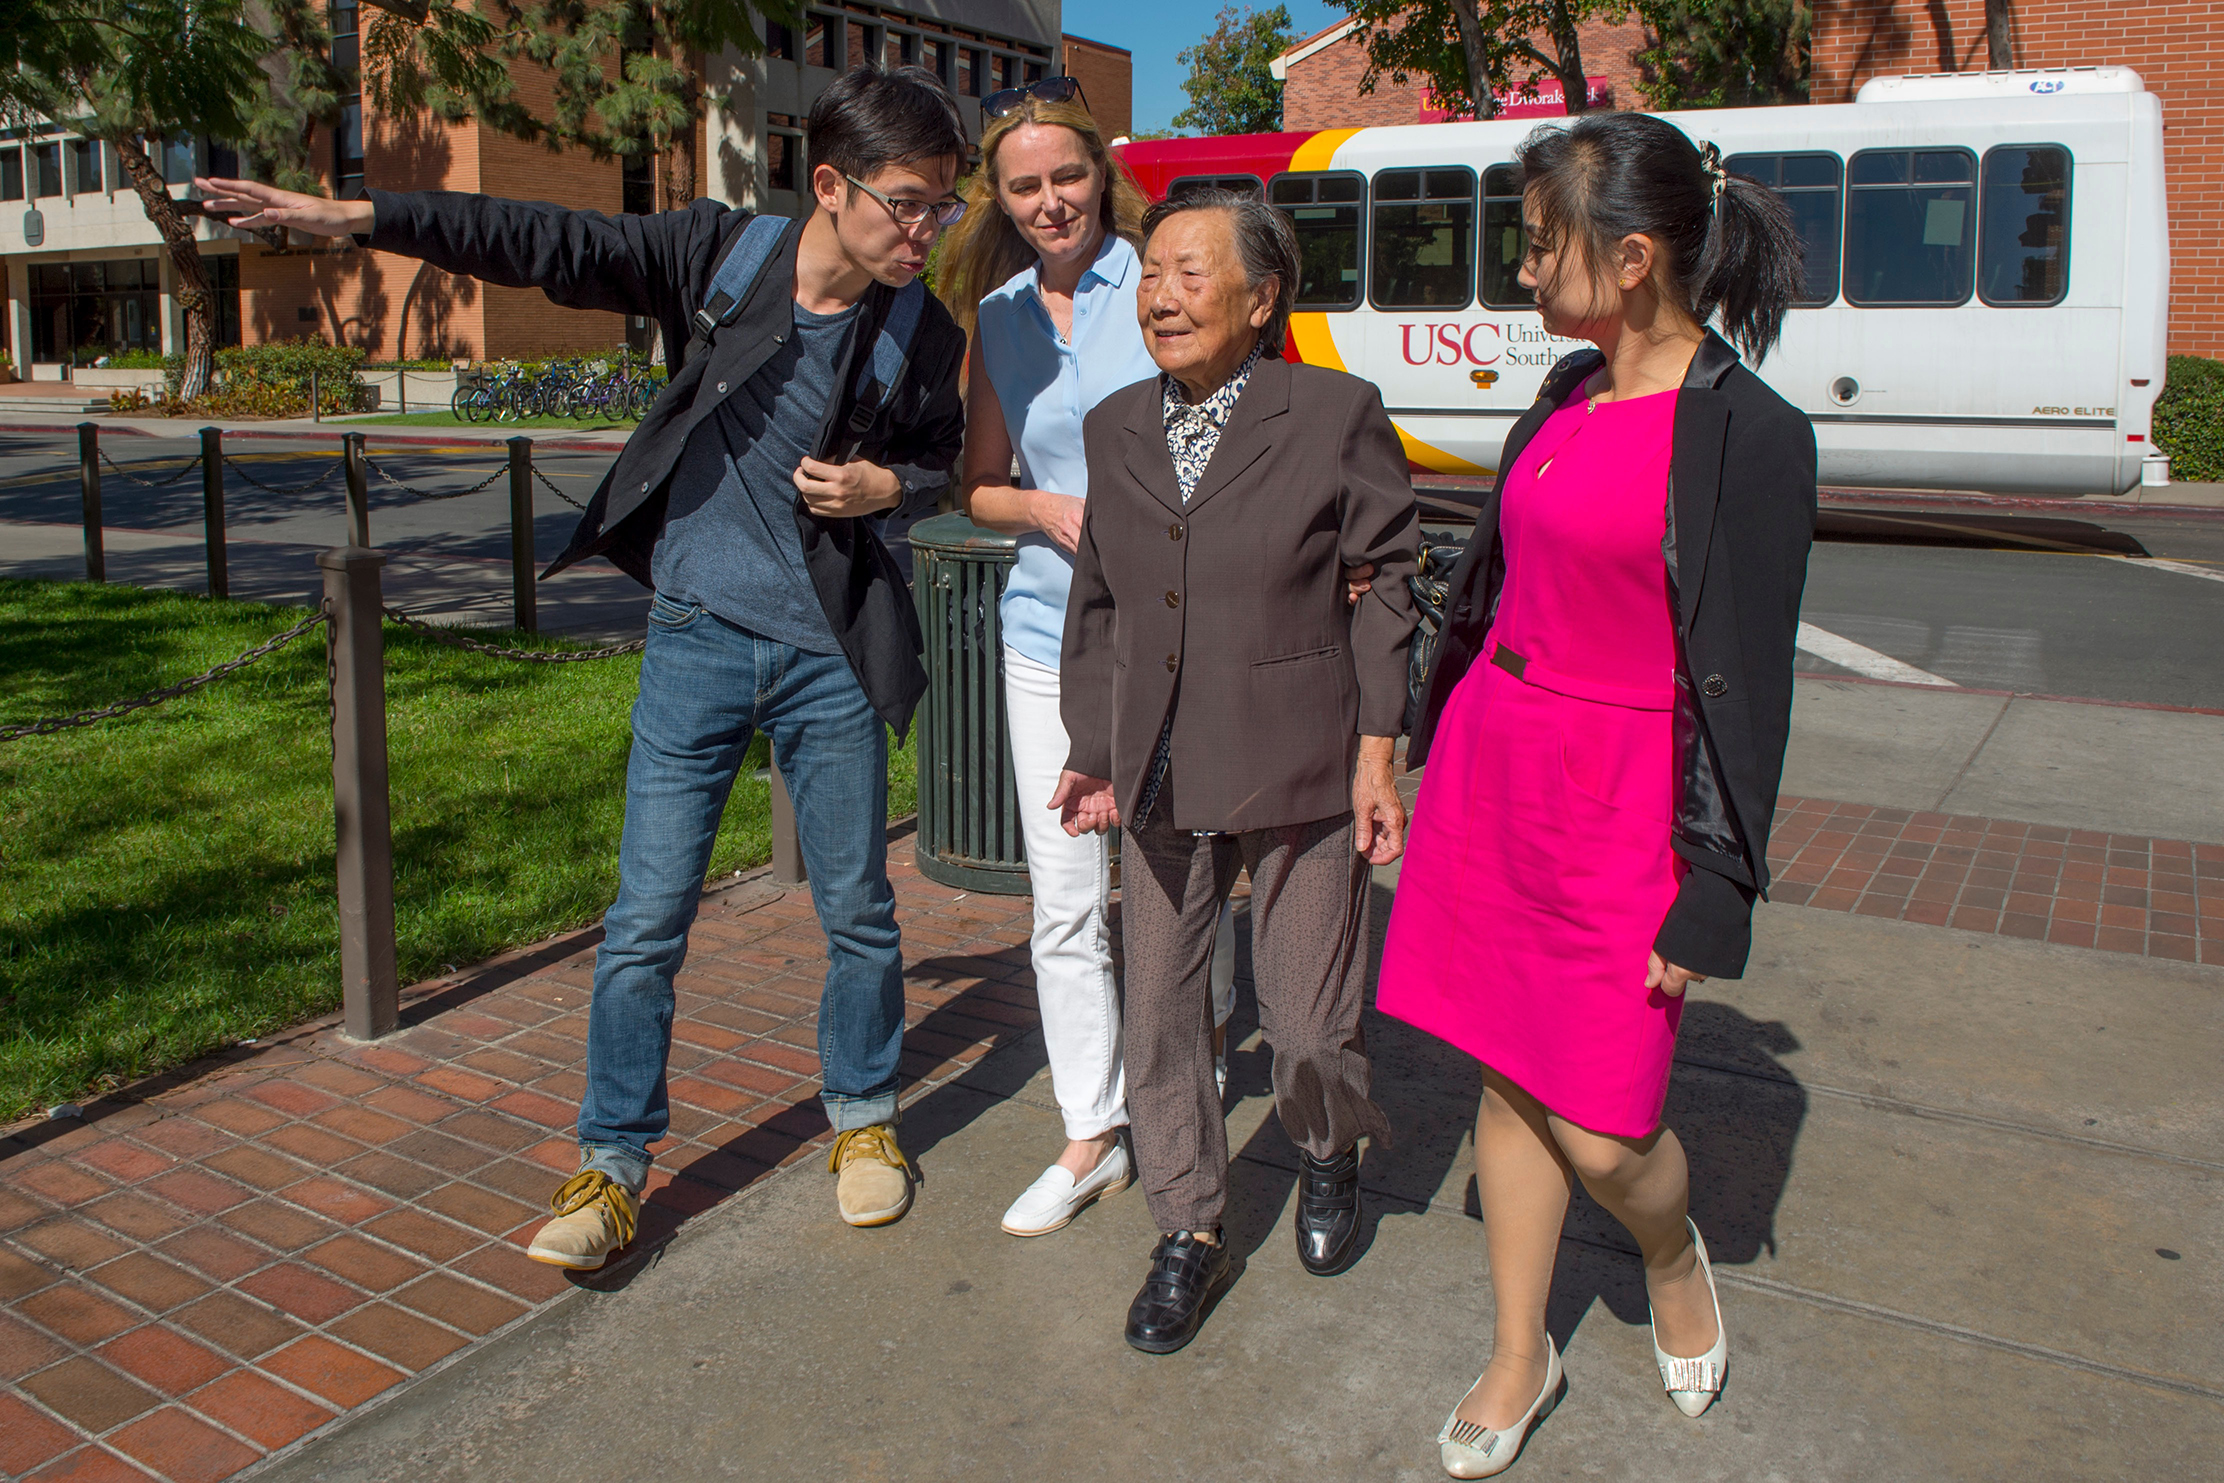 Cheng Fang, left, points out the USC campus to Madame Xia, second from right